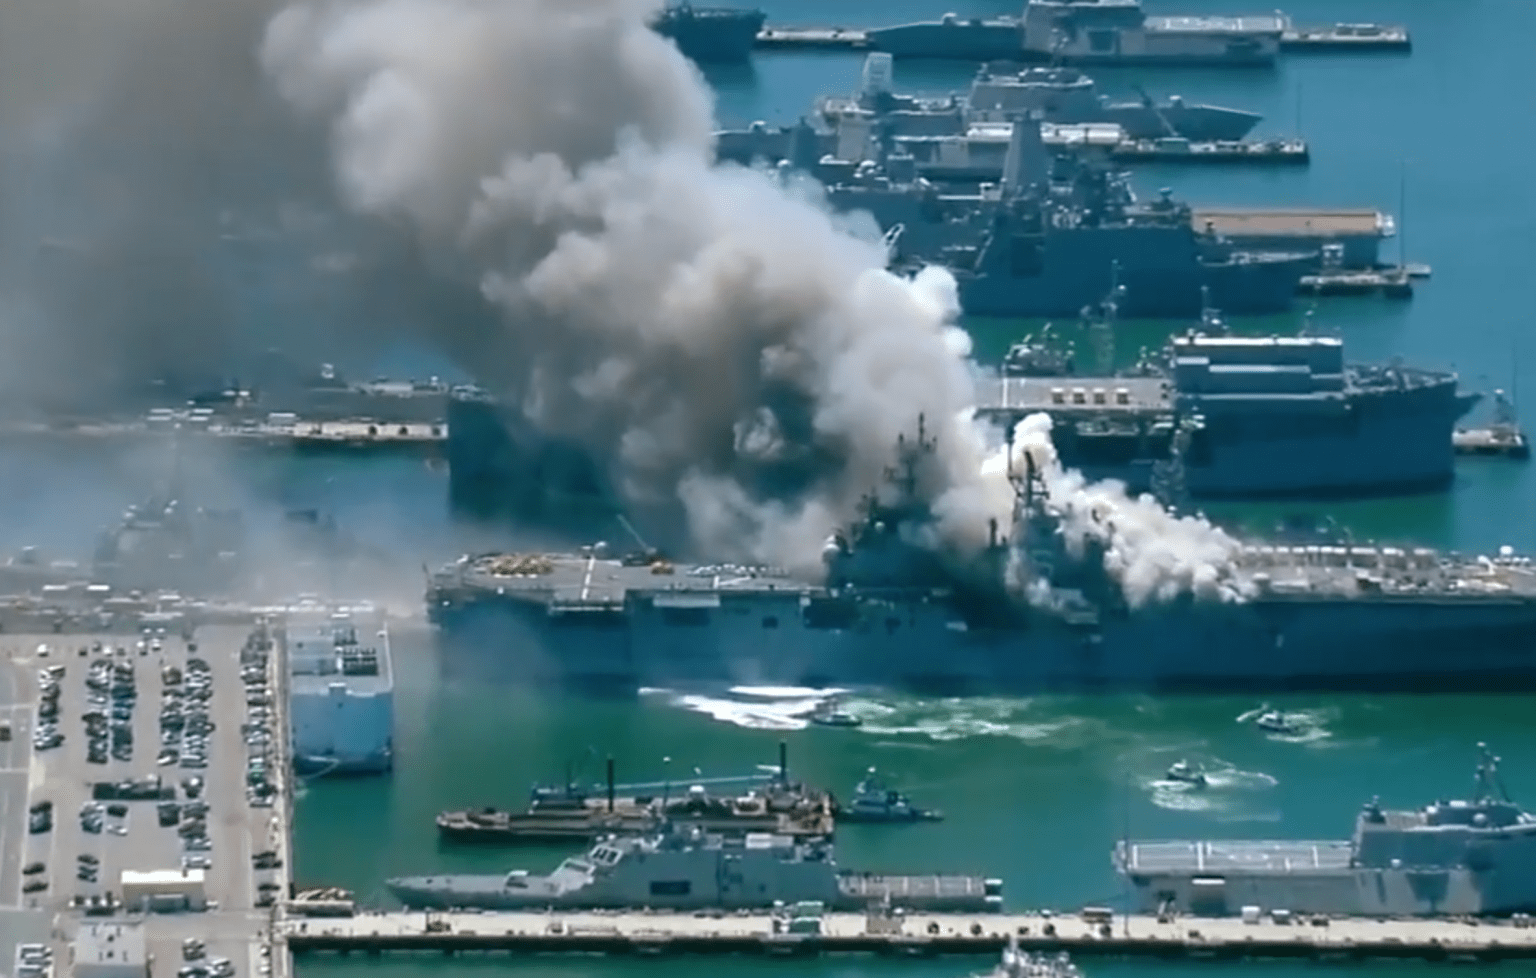 Nearly two dozen injured, including sailors and civilians, on Navy vessel explosion